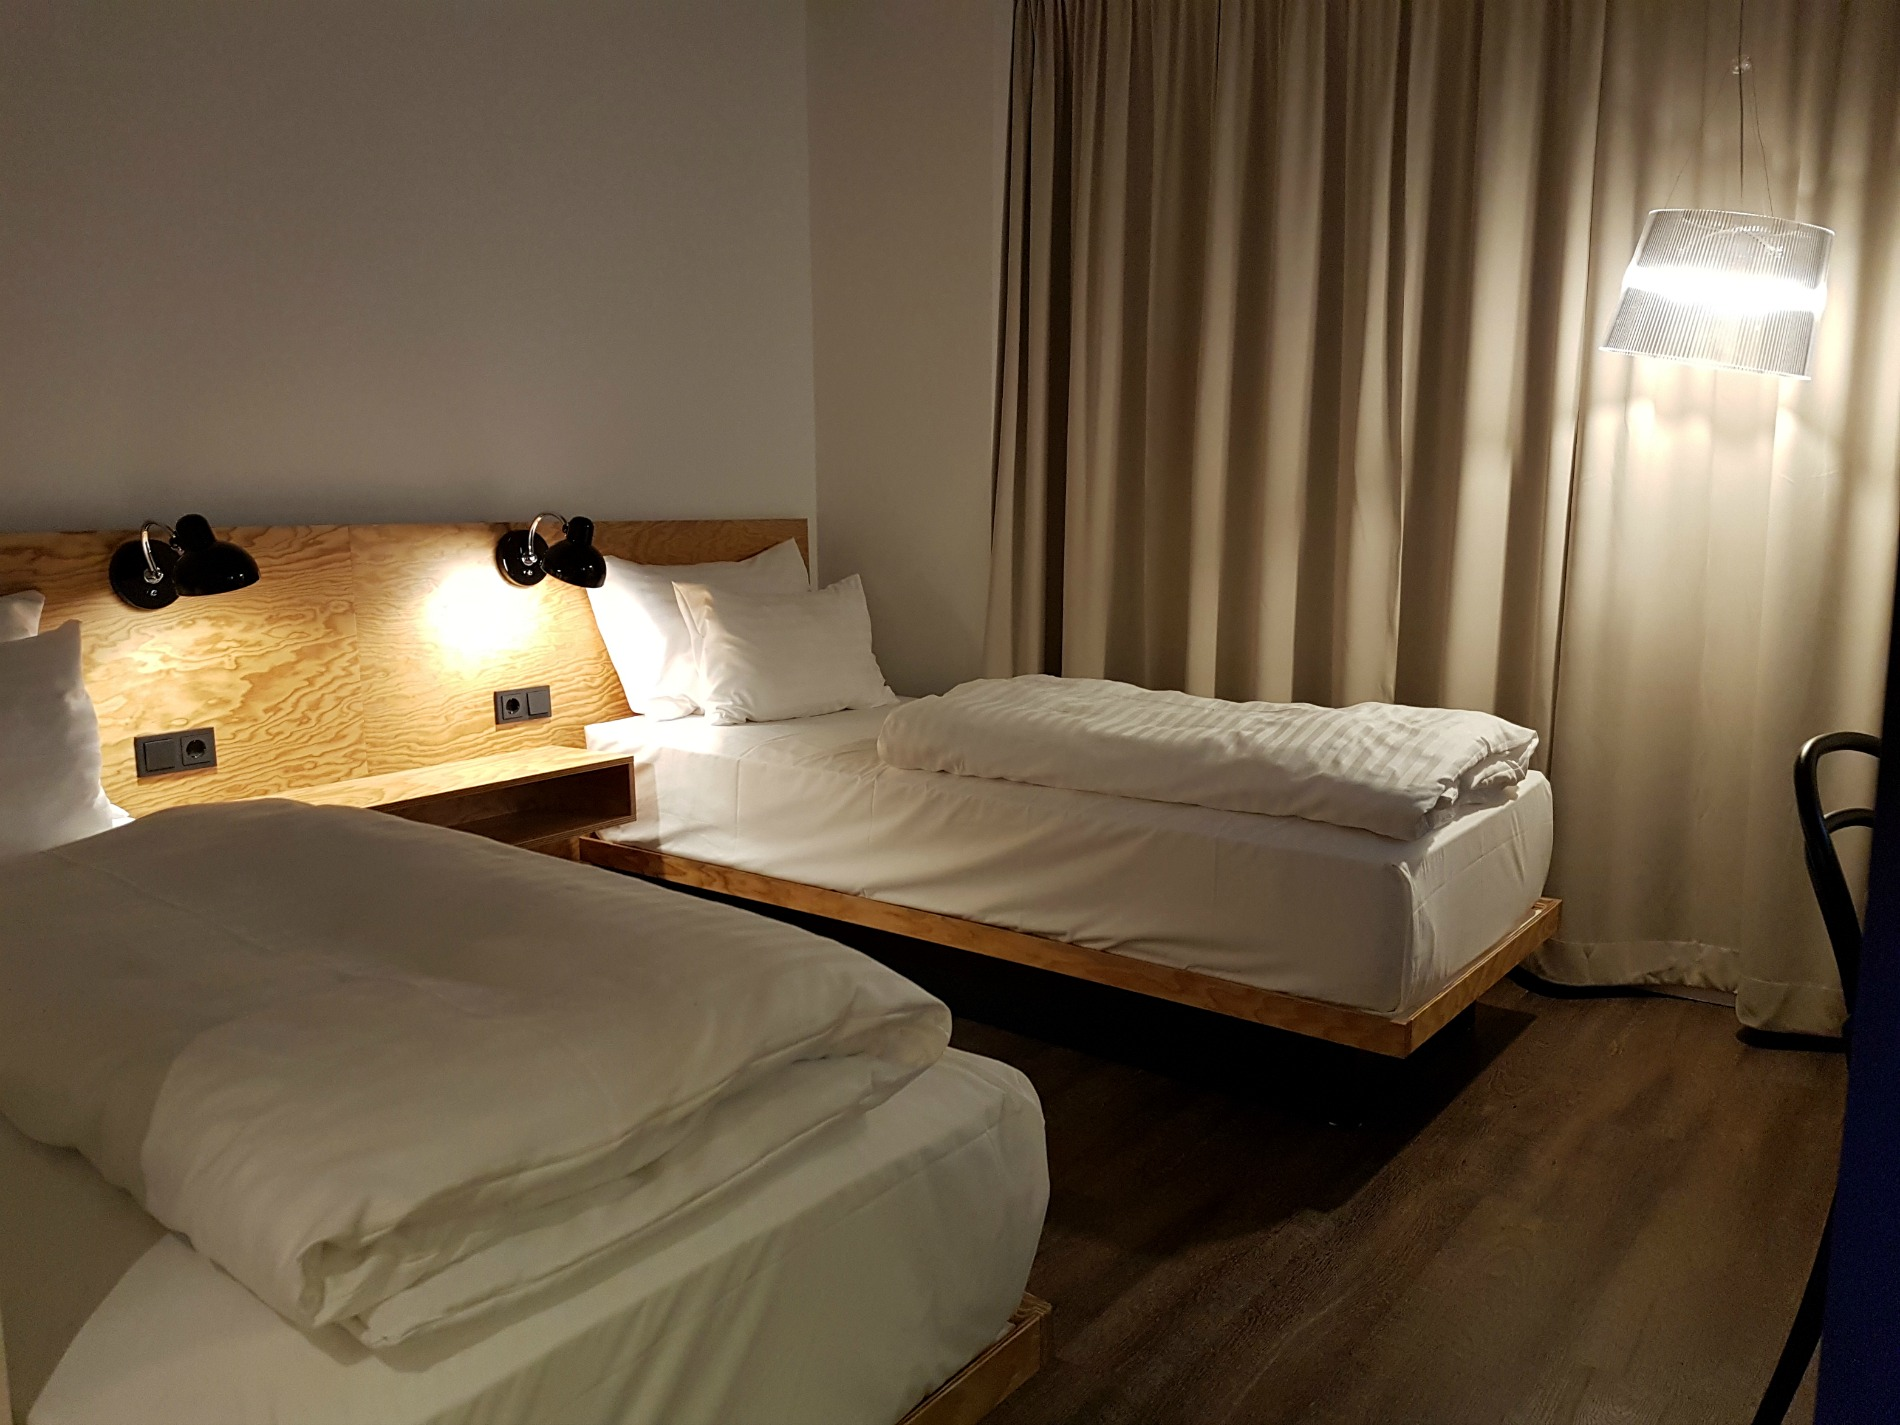 hotel-schani-wien-accessible-room-twin-beds